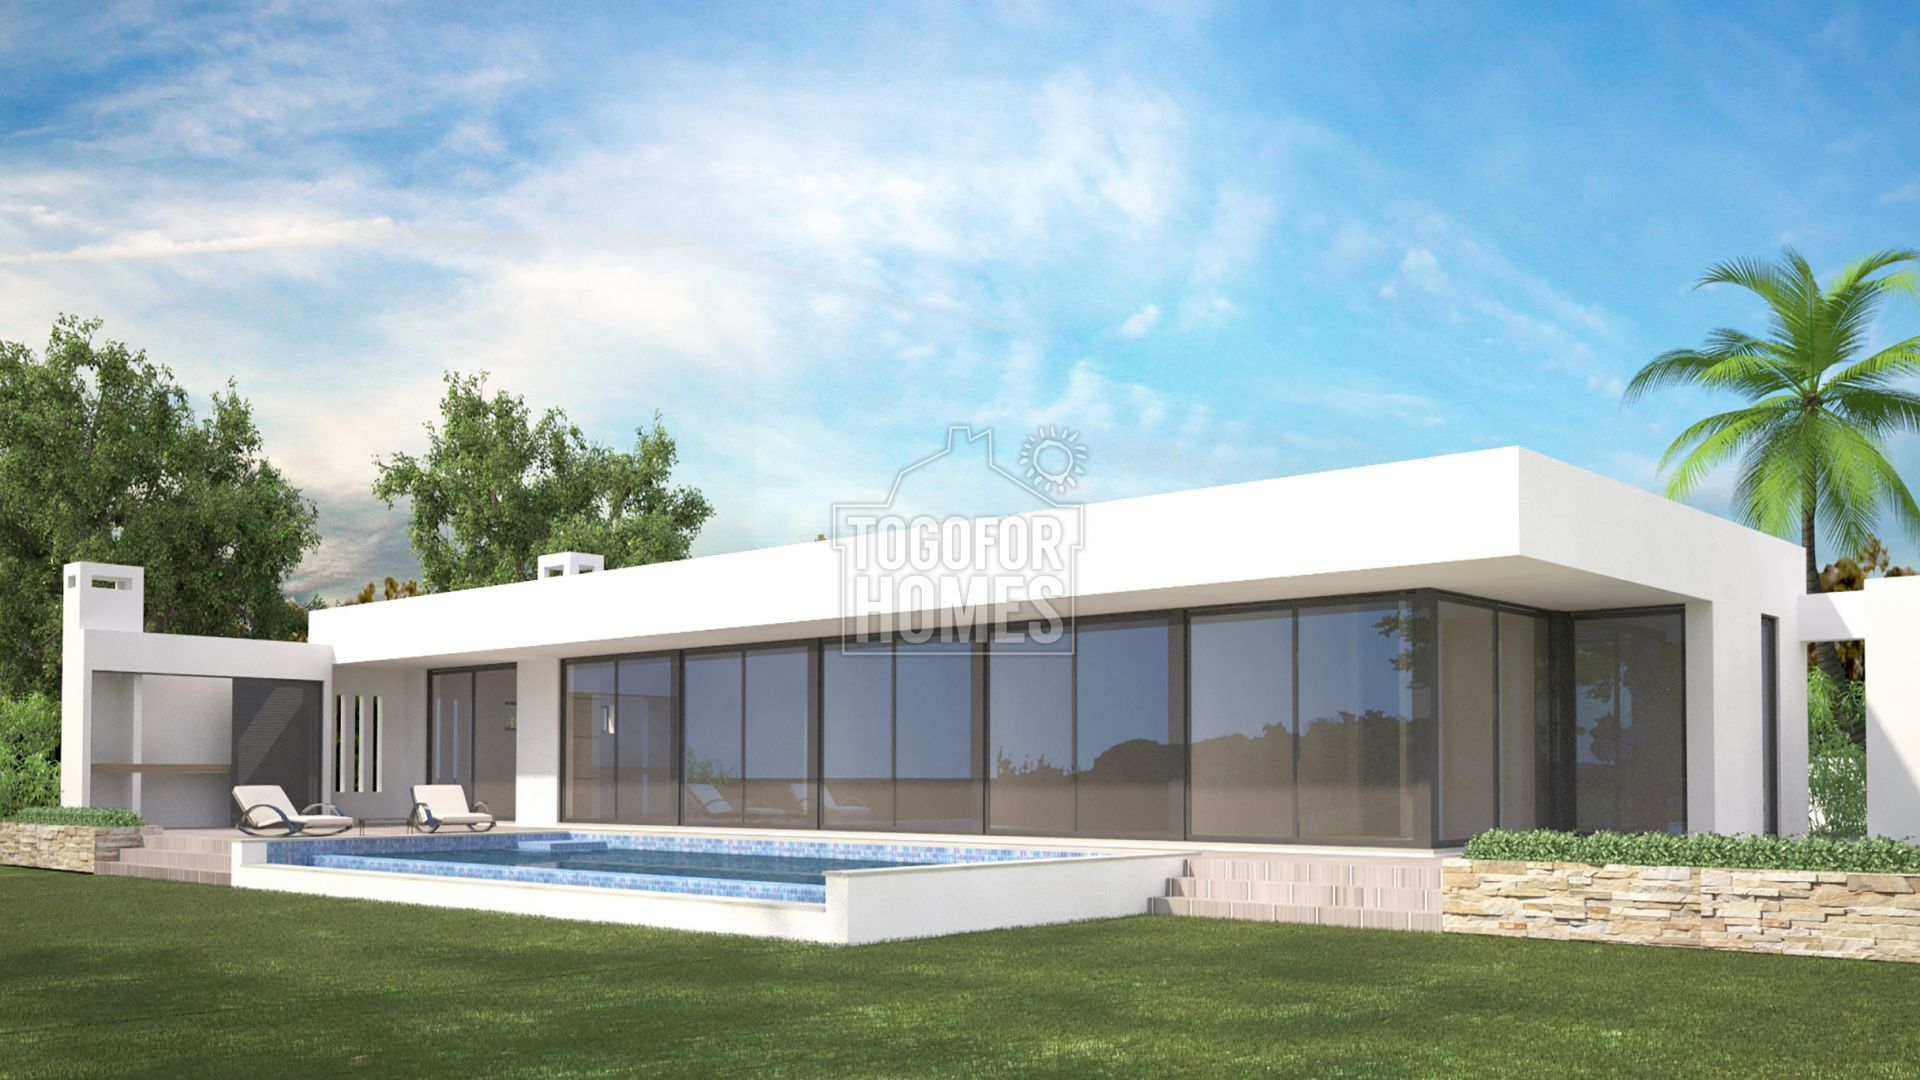 LG974 - Plot with project for a modern villa with pool and sea views, near Lagos, West Algarve